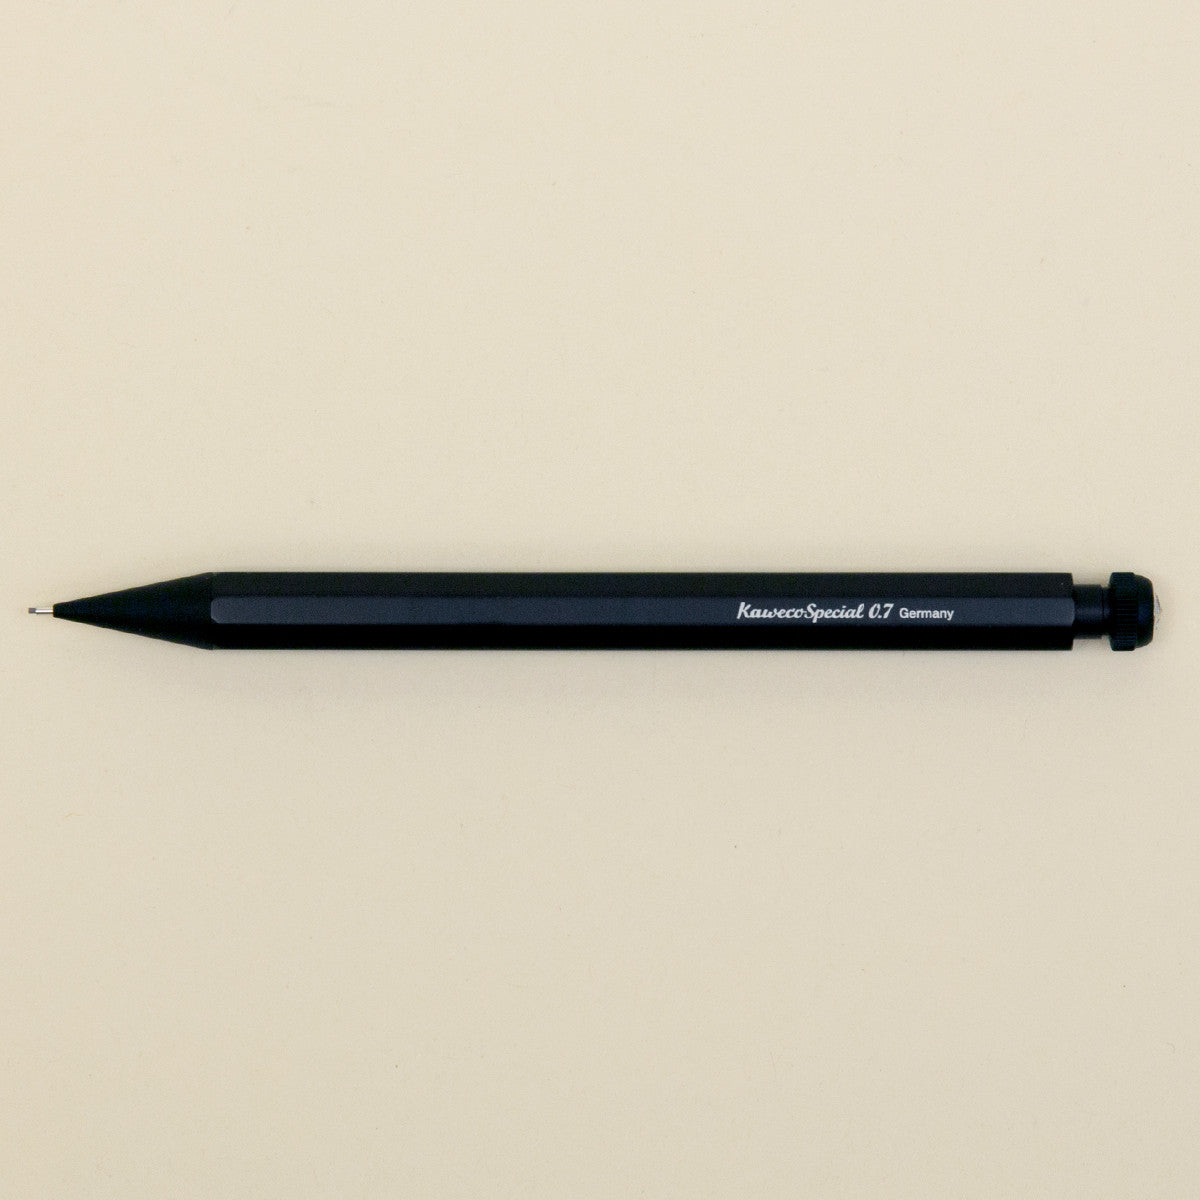 Kaweco Mechanical Pencil - Black